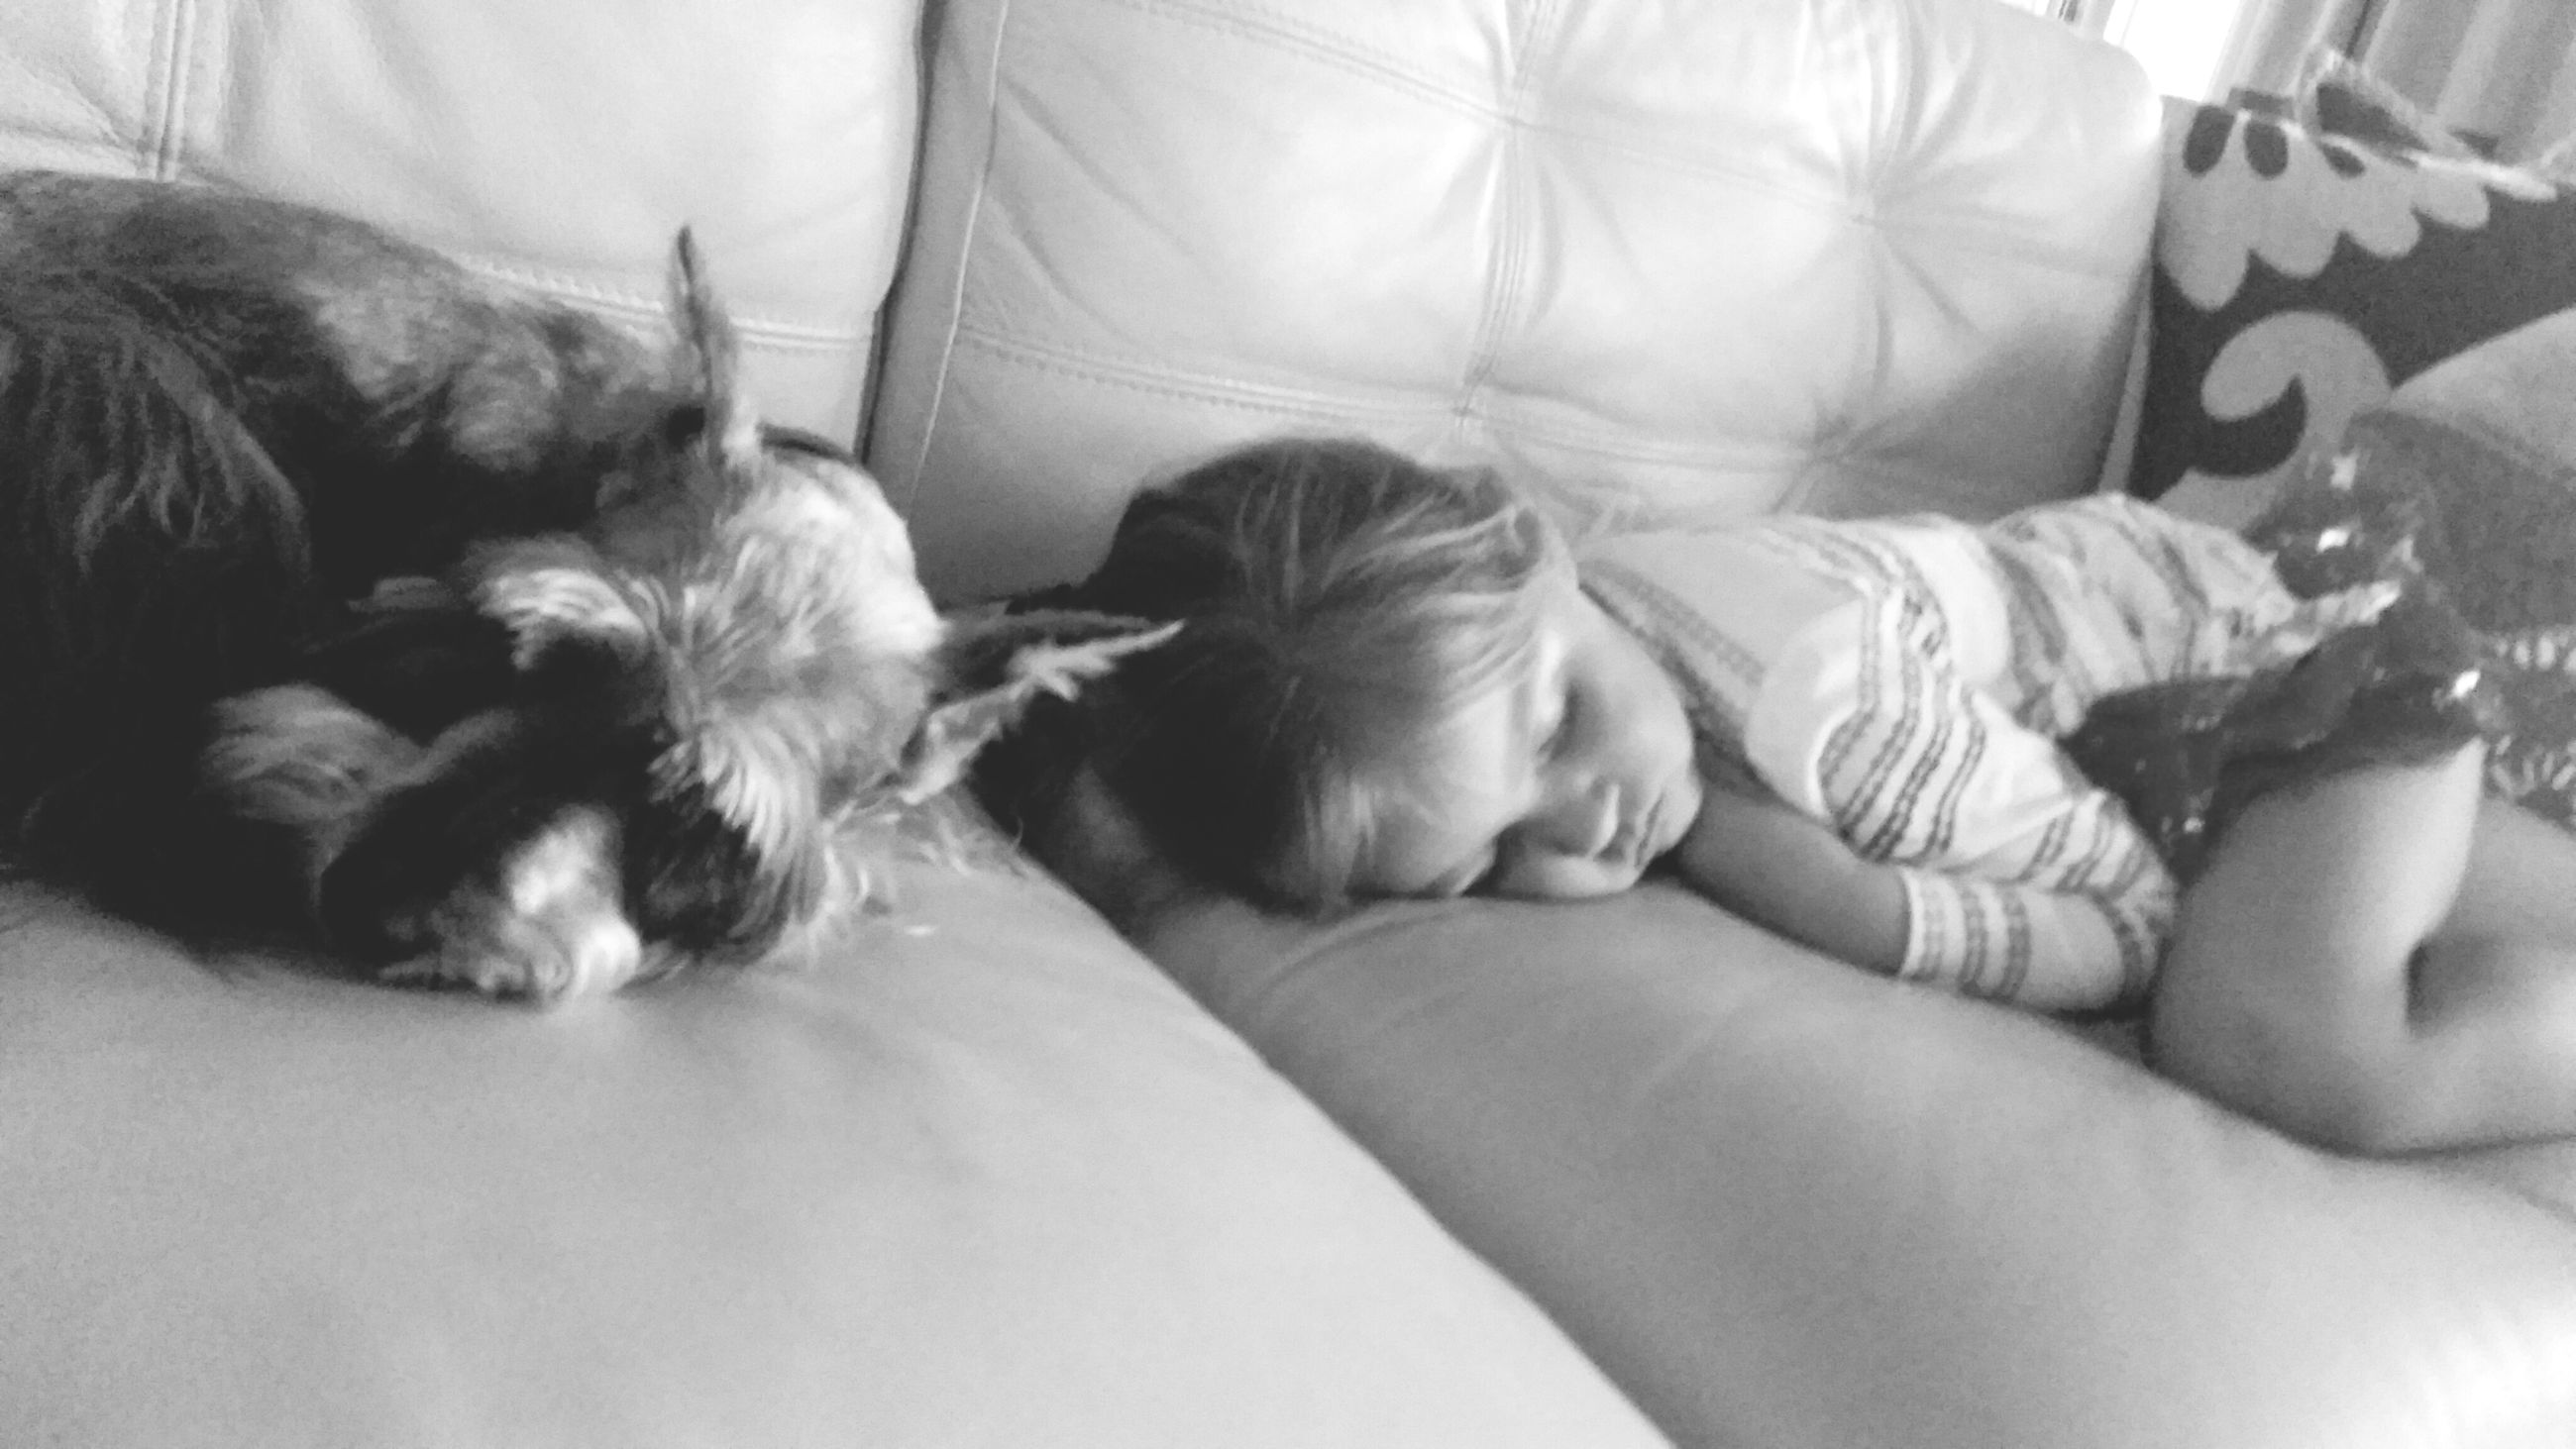 indoors, pets, domestic animals, dog, relaxation, bed, mammal, animal themes, lying down, sleeping, one animal, resting, home interior, cute, childhood, innocence, togetherness, bonding